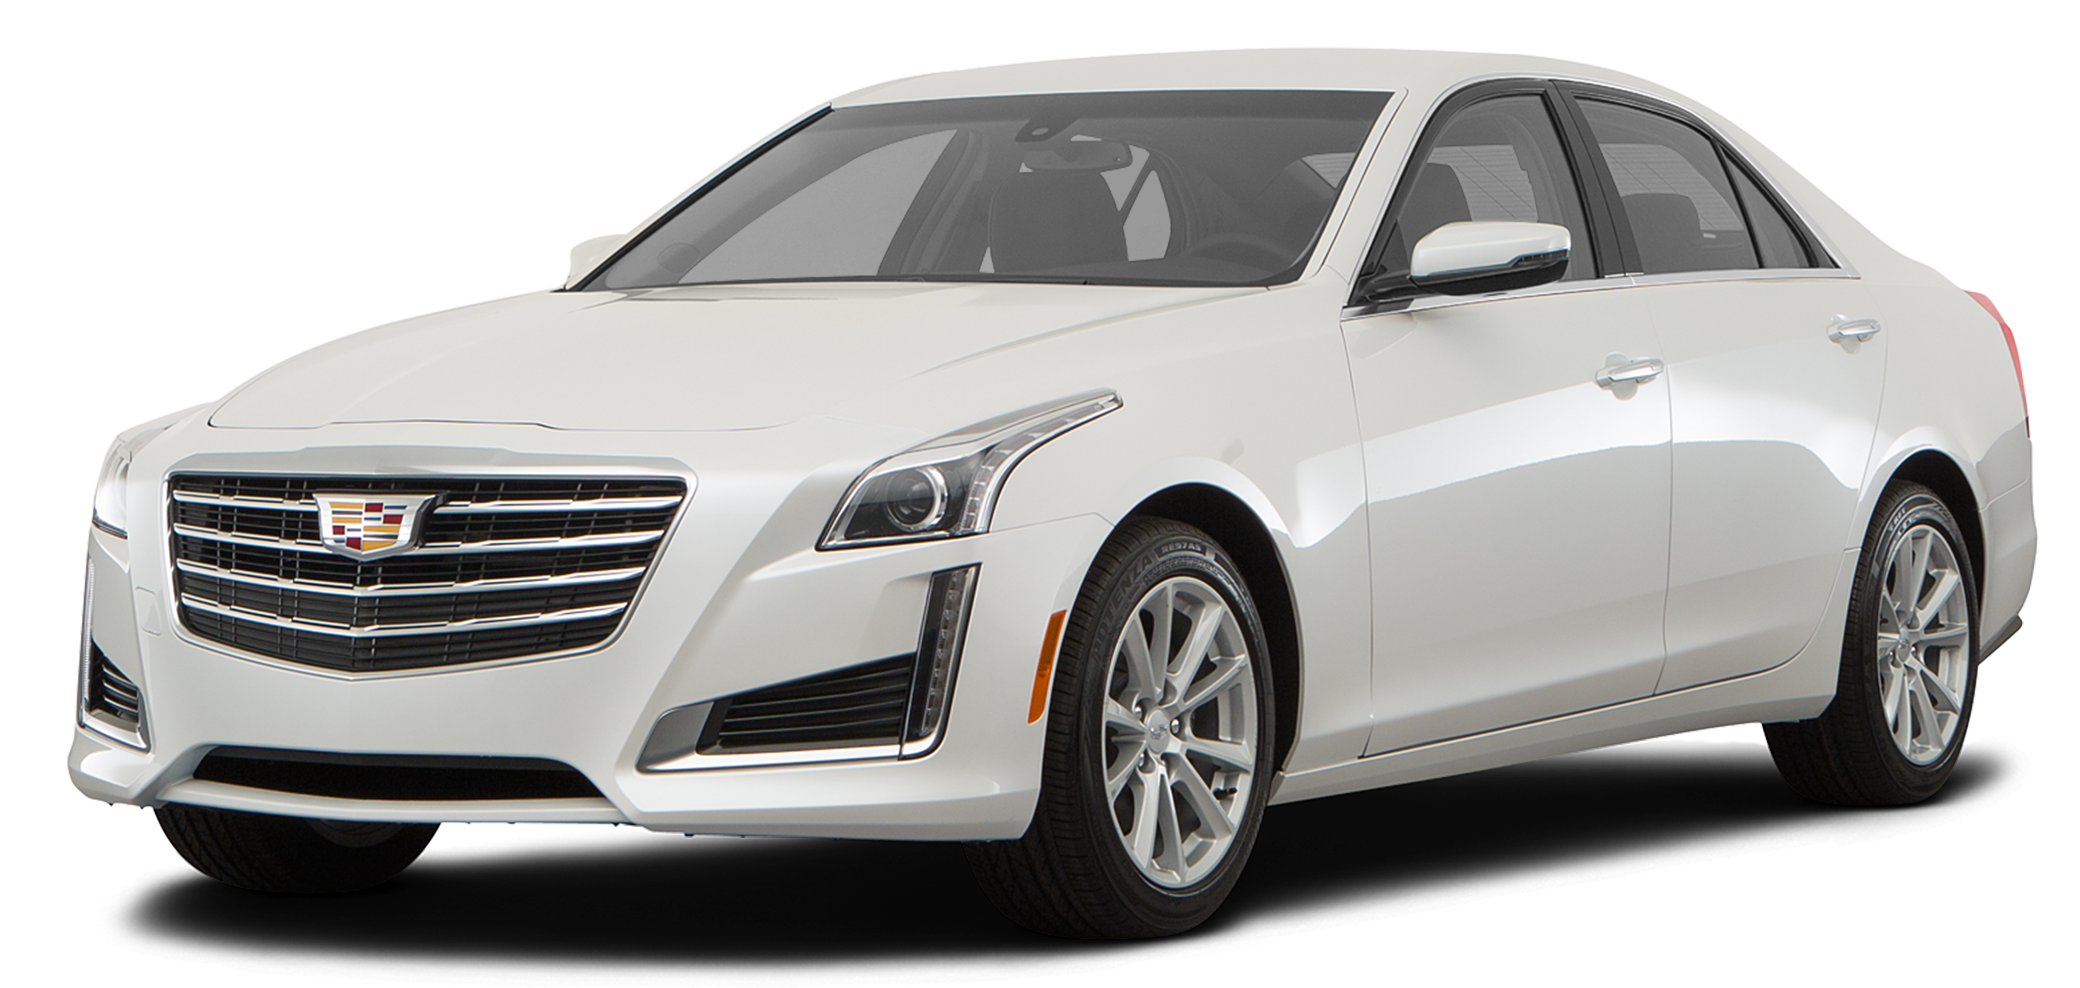 2019 CADILLAC CTS Incentives Specials & fers in Wilkes Barre PA